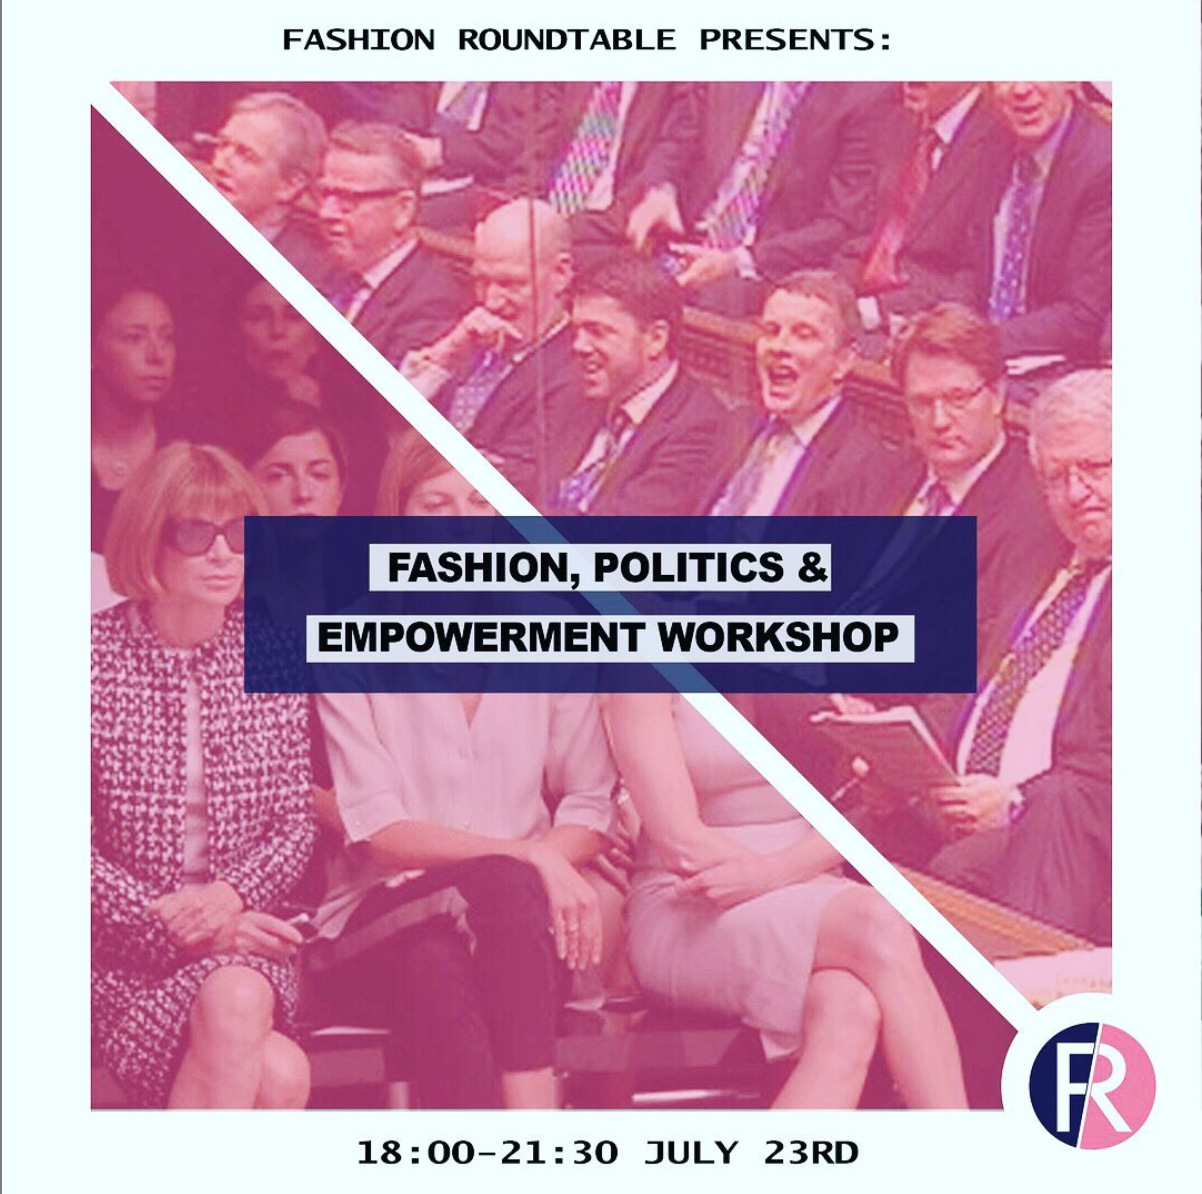 Fashion, Politics and Empowerment Q&A and Workshop - July 2019, Central WorkingA Q&A with award winning new generation designer Tolu Coker and workshop led by the Fashion Roundtable Team on fashion, policy, politics and empowermentJ.